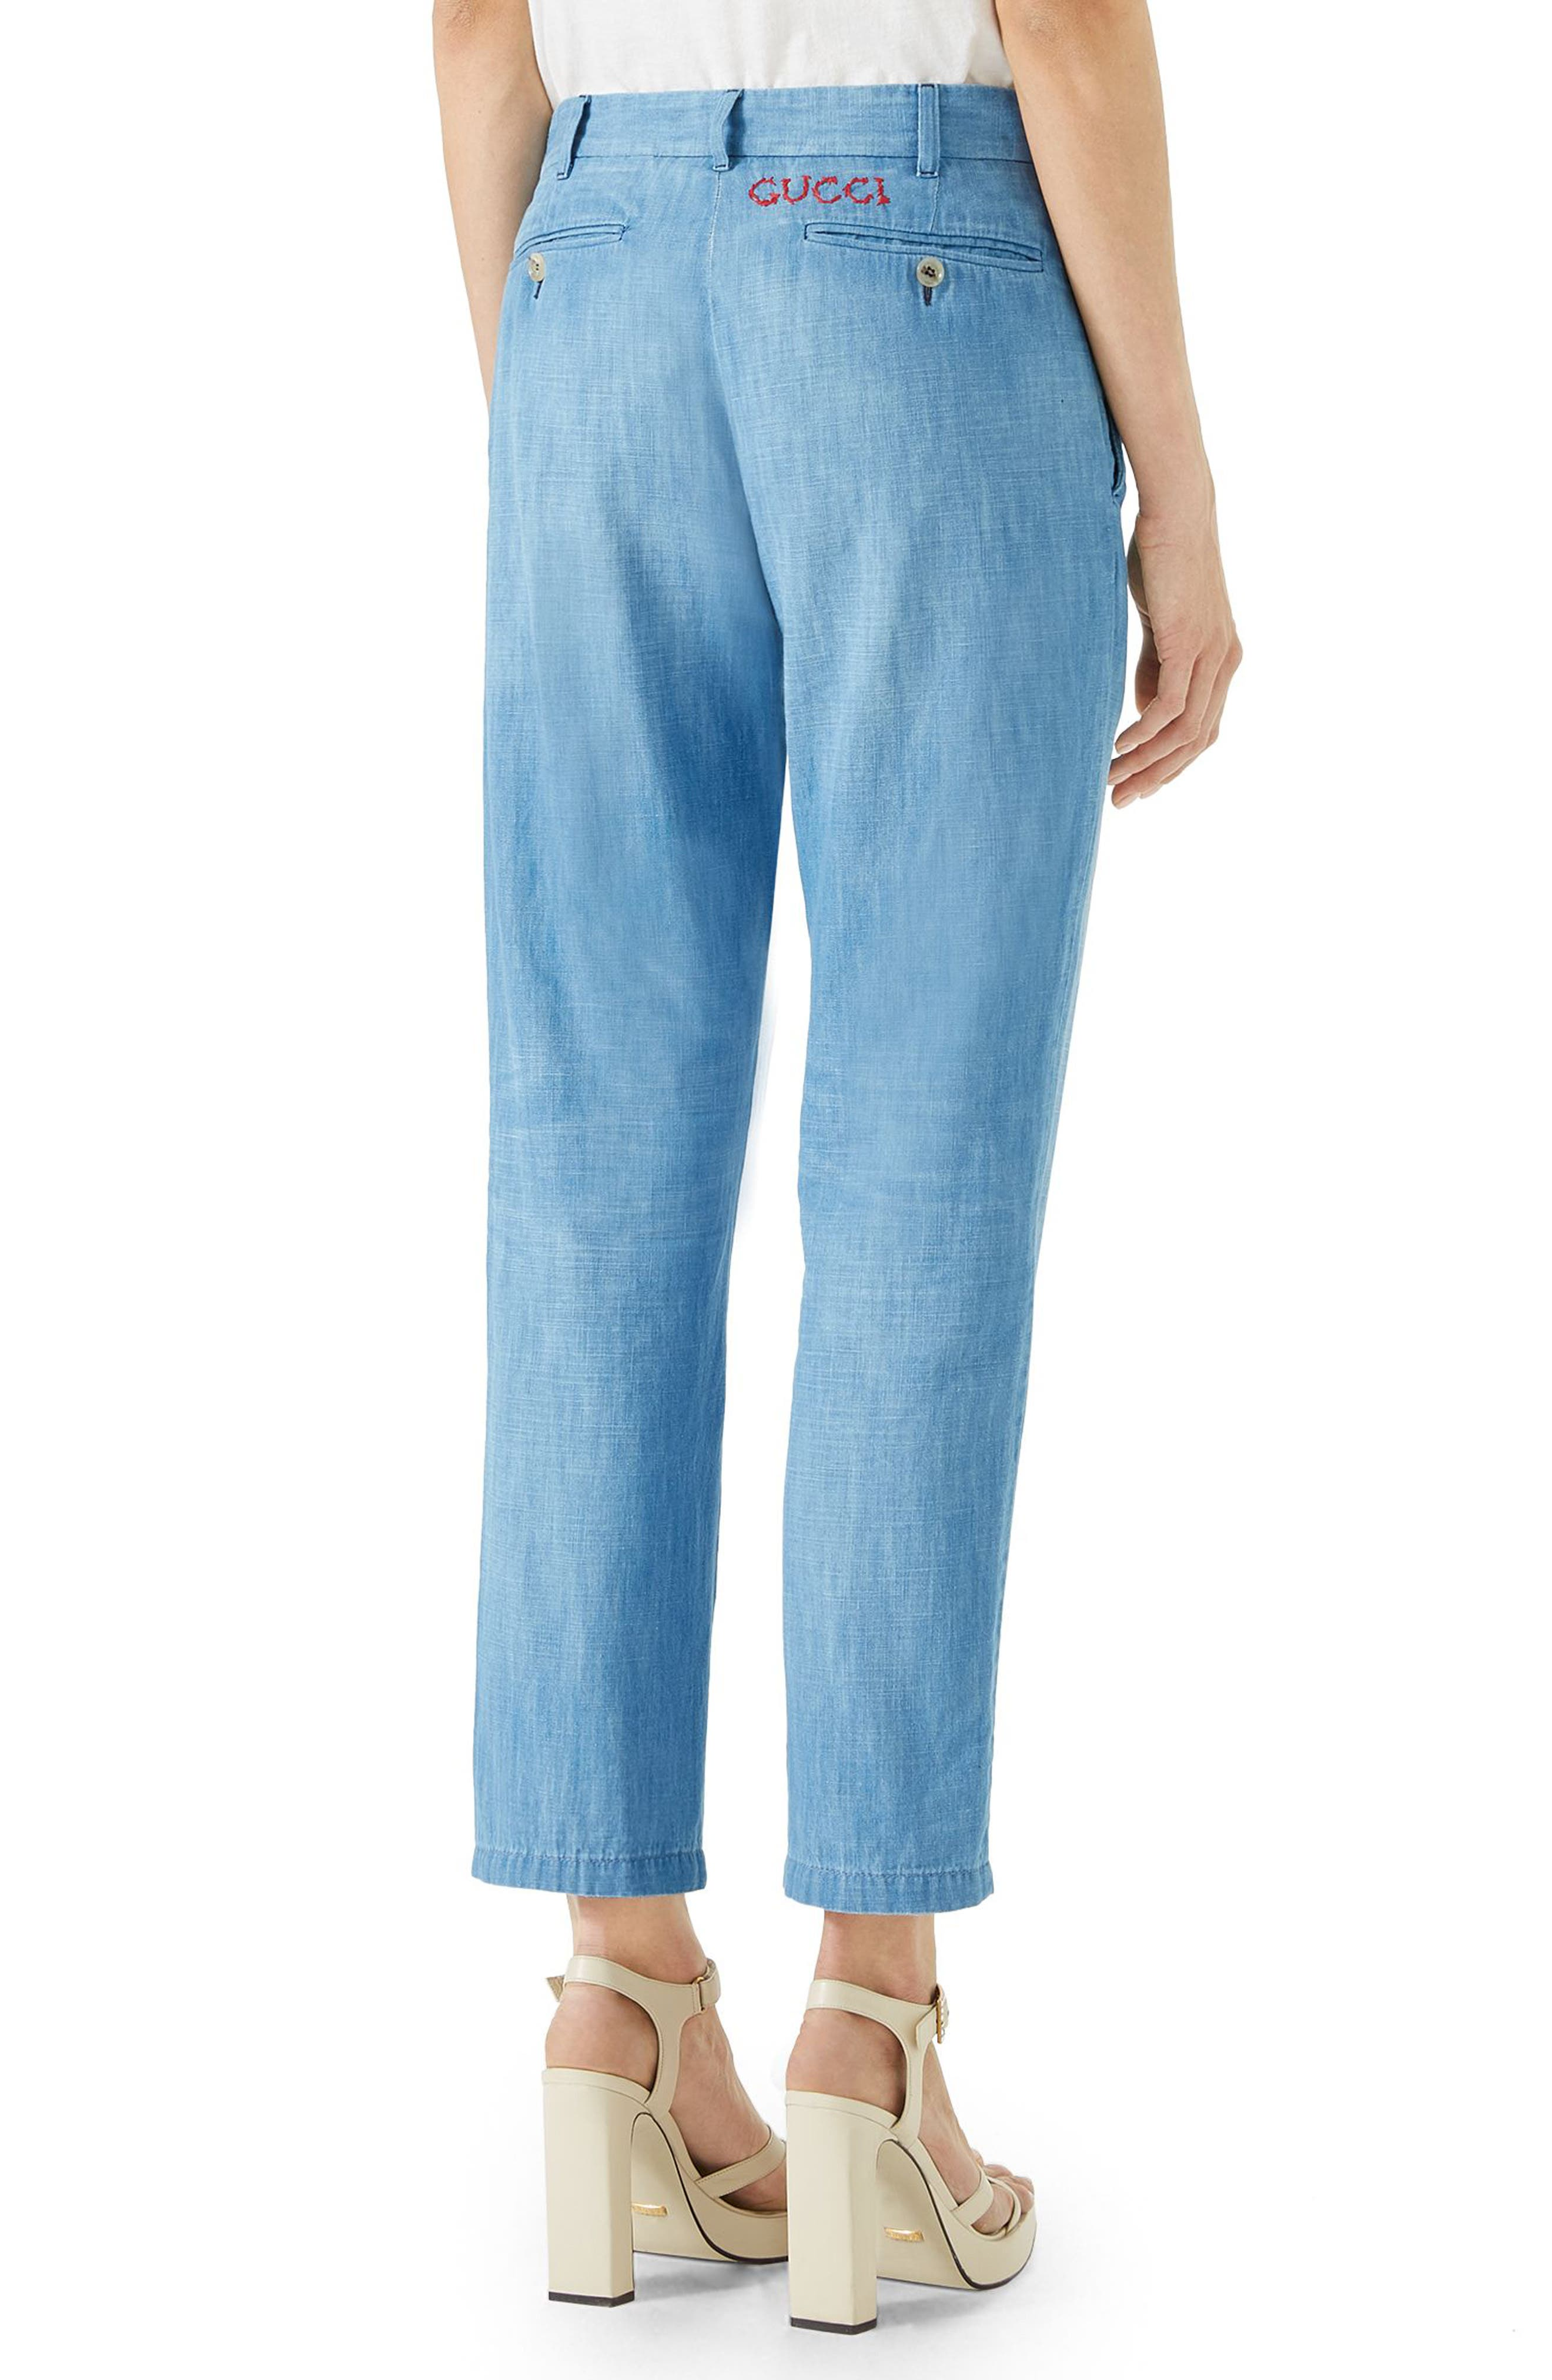 Denim Chino Pants,                             Alternate thumbnail 2, color,                             Light Blue/ Red